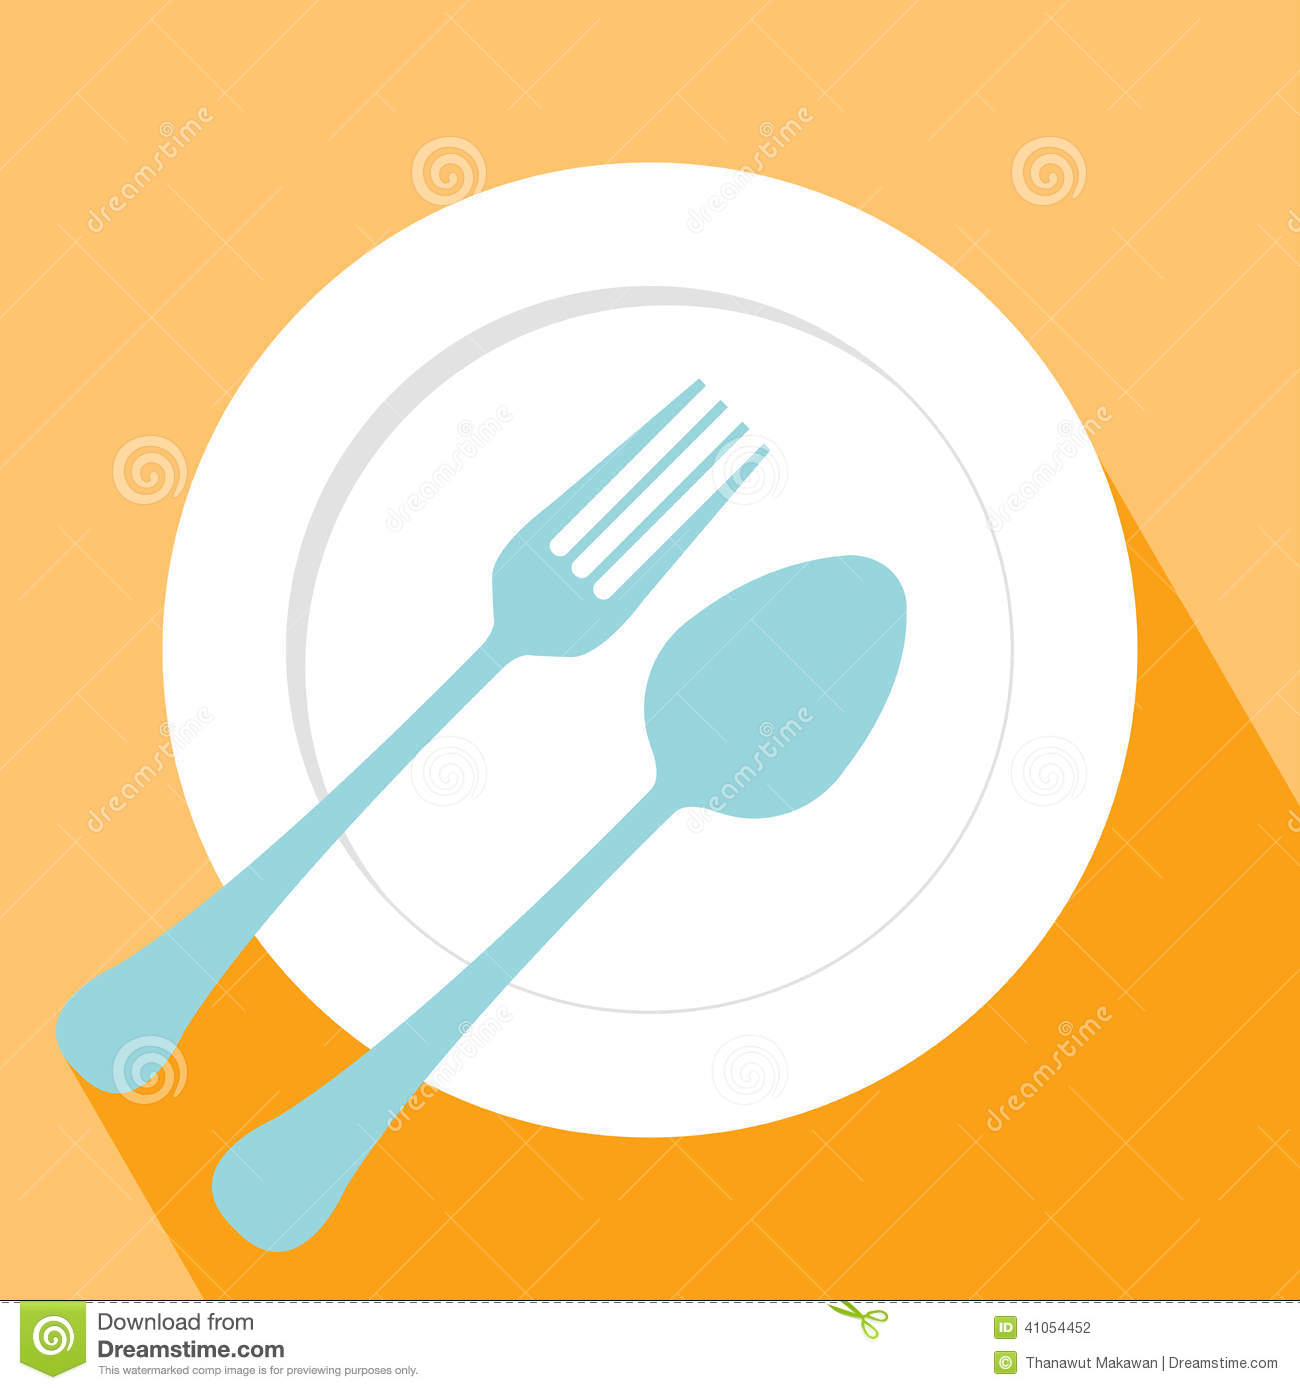 Plate Spoon And Fork Icon Stock Vector Image 41054452 : plate spoon fork icon symbol elements design 41054452 from dreamstime.com size 1300 x 1390 jpeg 91kB